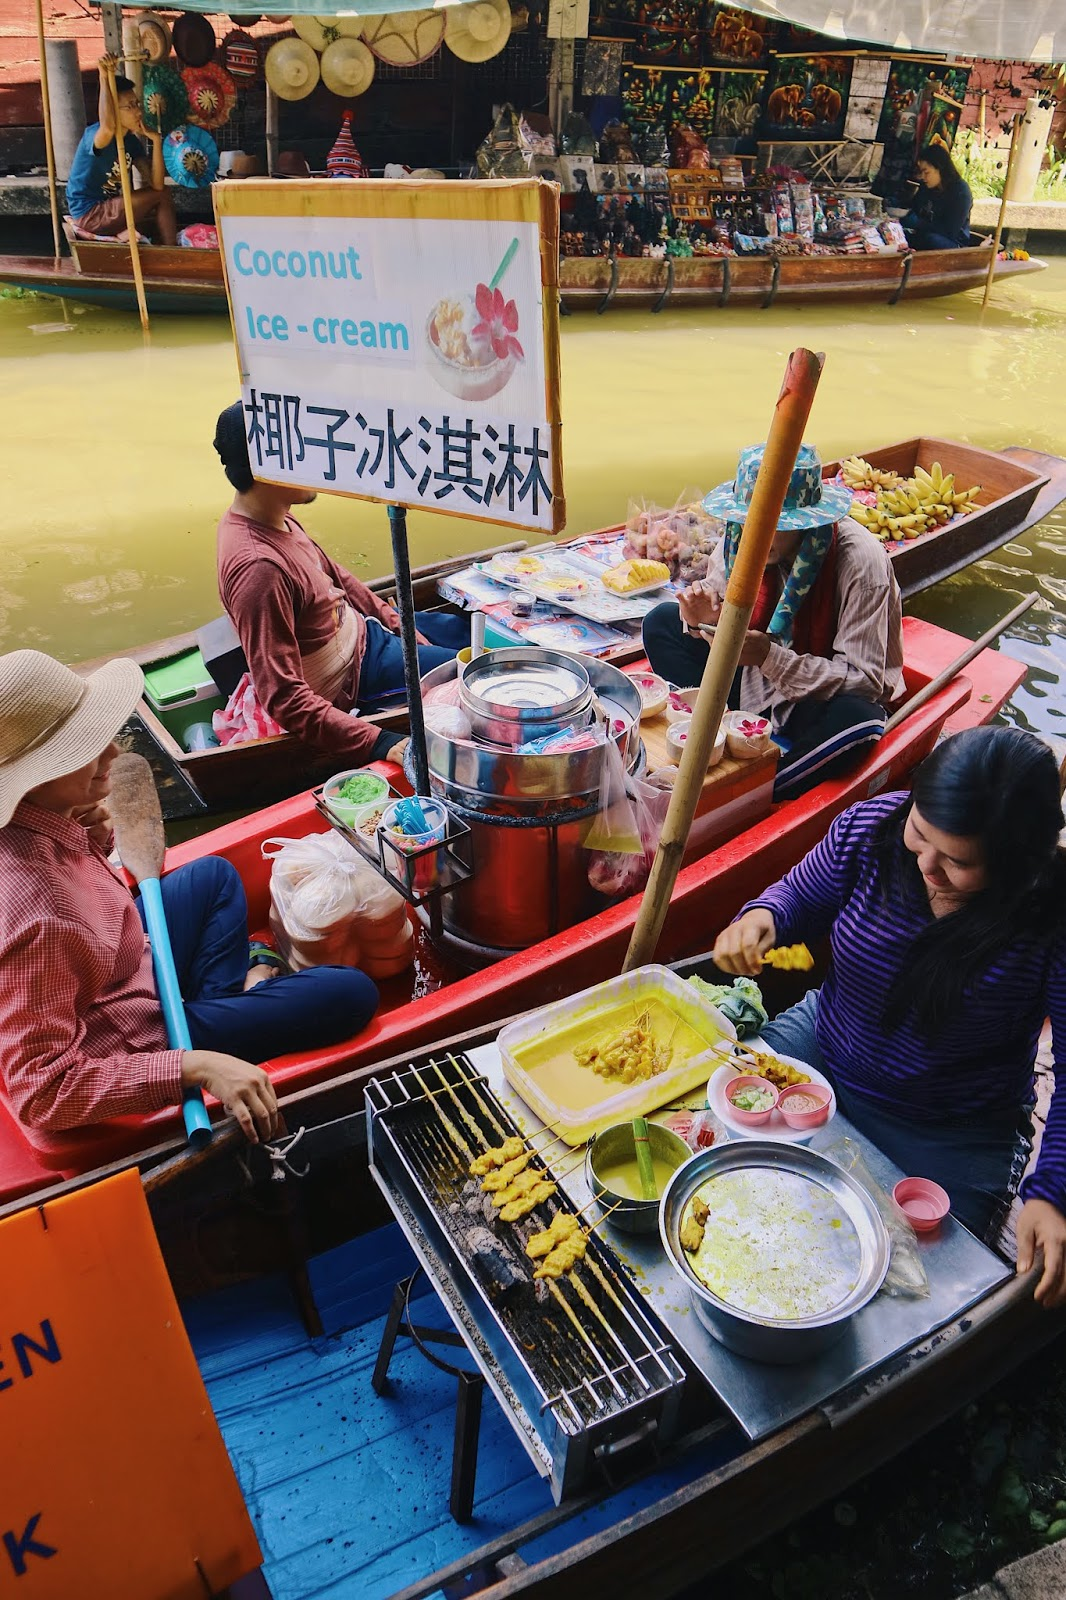 coconut ice cream and satay for sale at Damnoen Saduak Floating Market